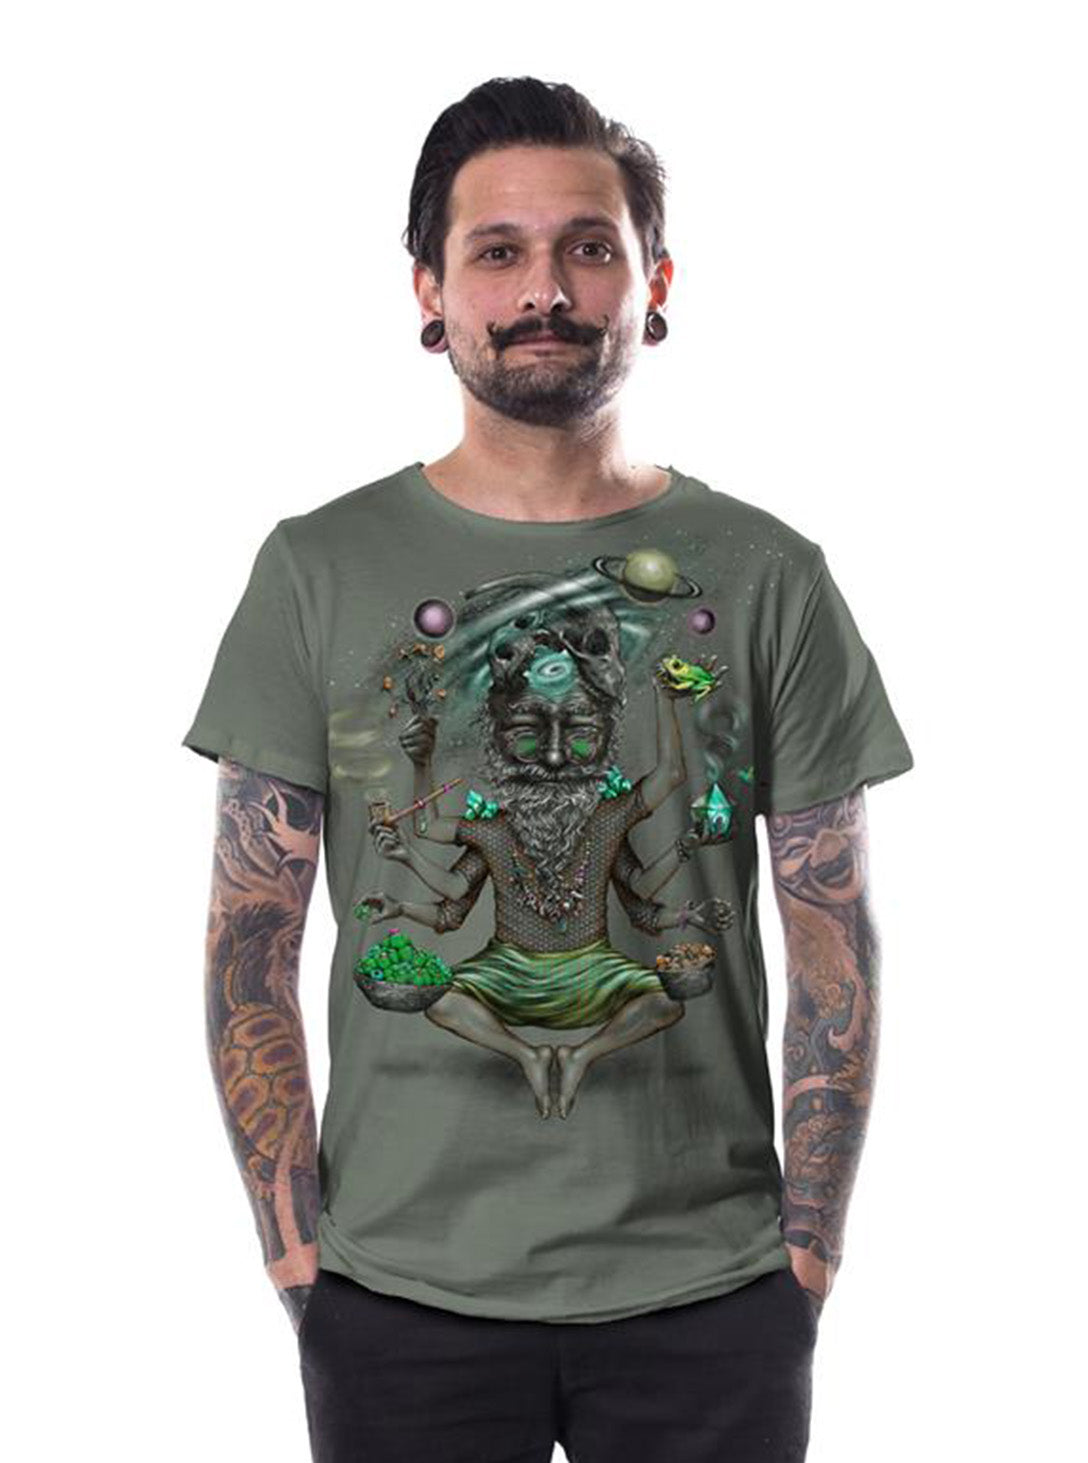 12a4d98e Fantasy T-Shirt Alice in Wonderland Play Your Cards Right Joker Top - Color  Olive - Street Habit